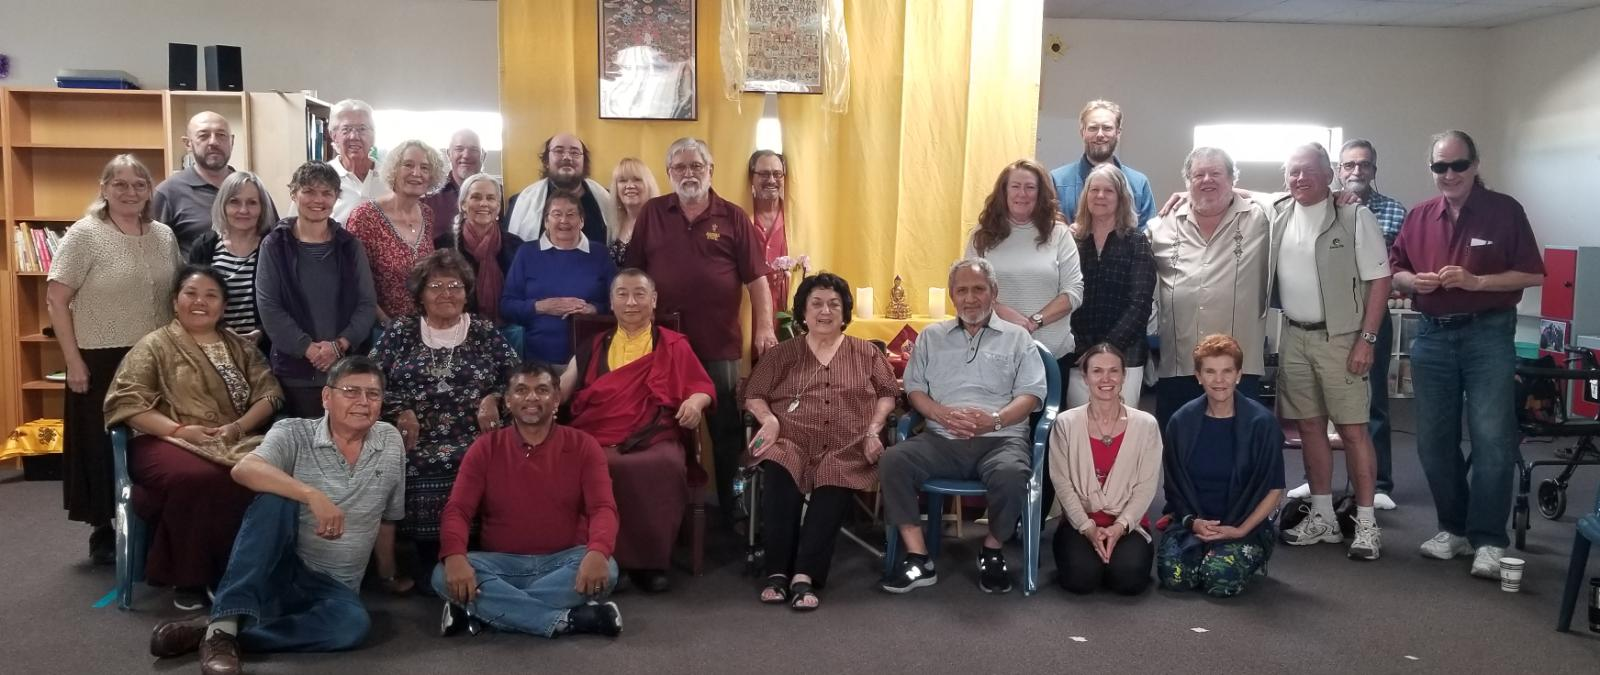 Bardor Tulku Rinpoche in Phoenix April 14, 2019